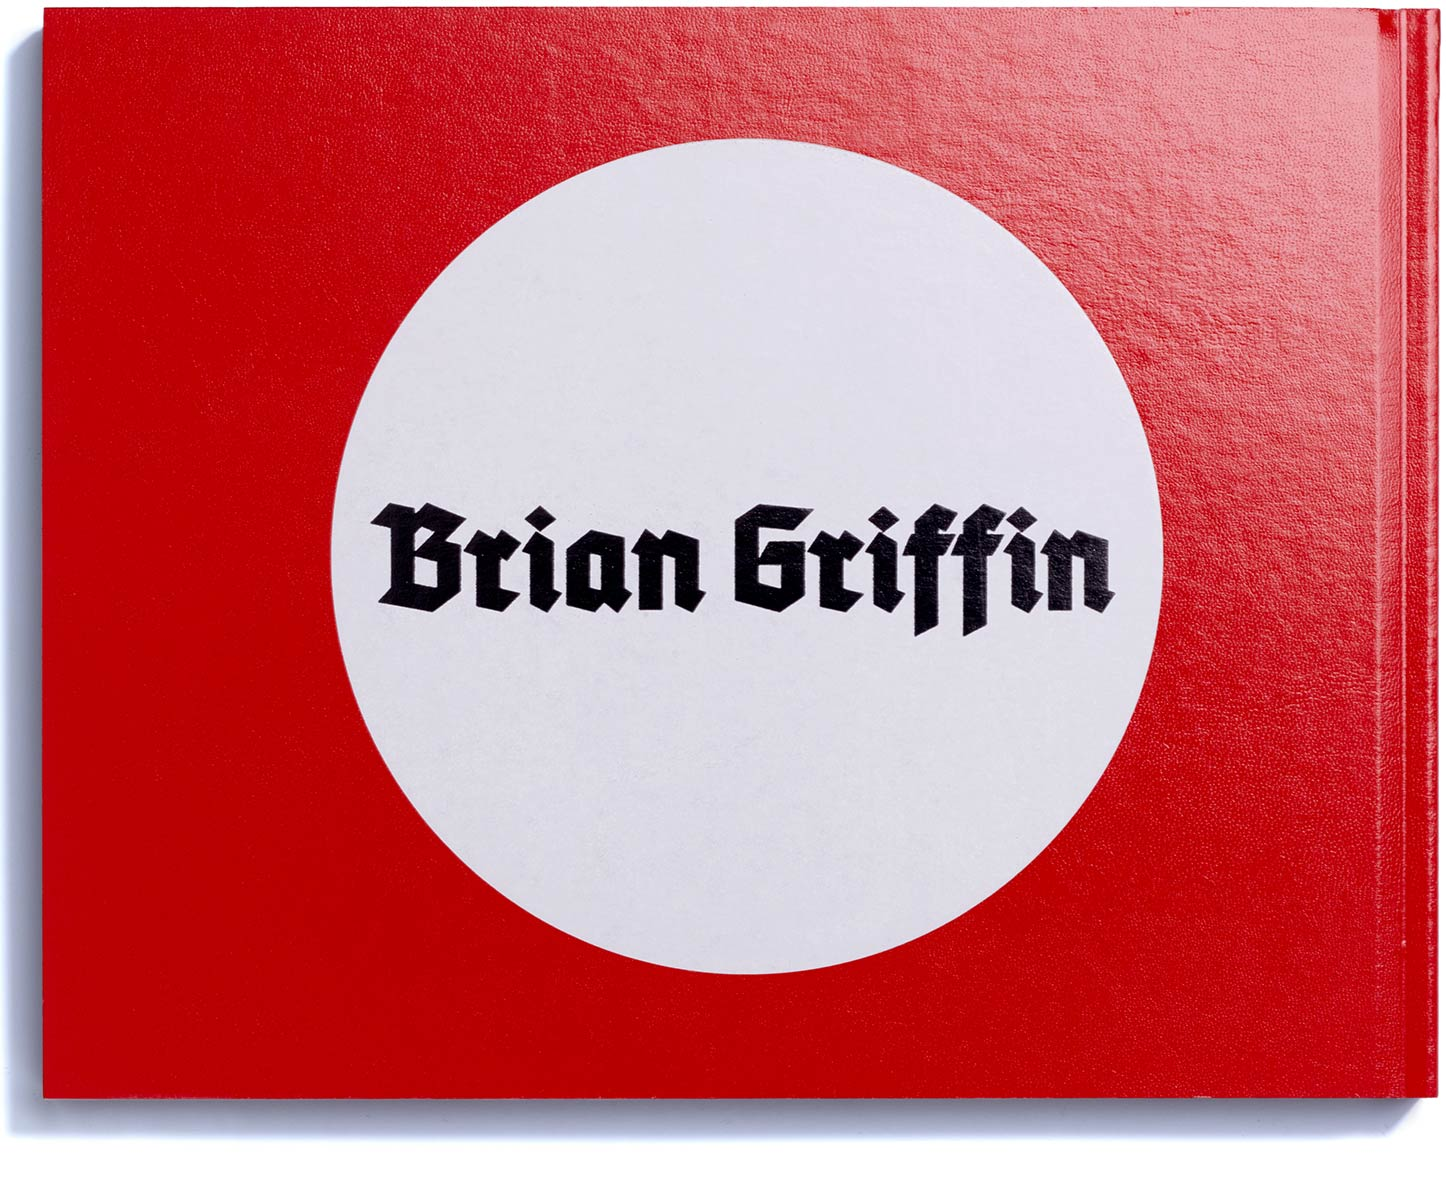 Himmelstrasse, Brian Griffin, published by Browns Editions, designed by Browns Design, book, photography